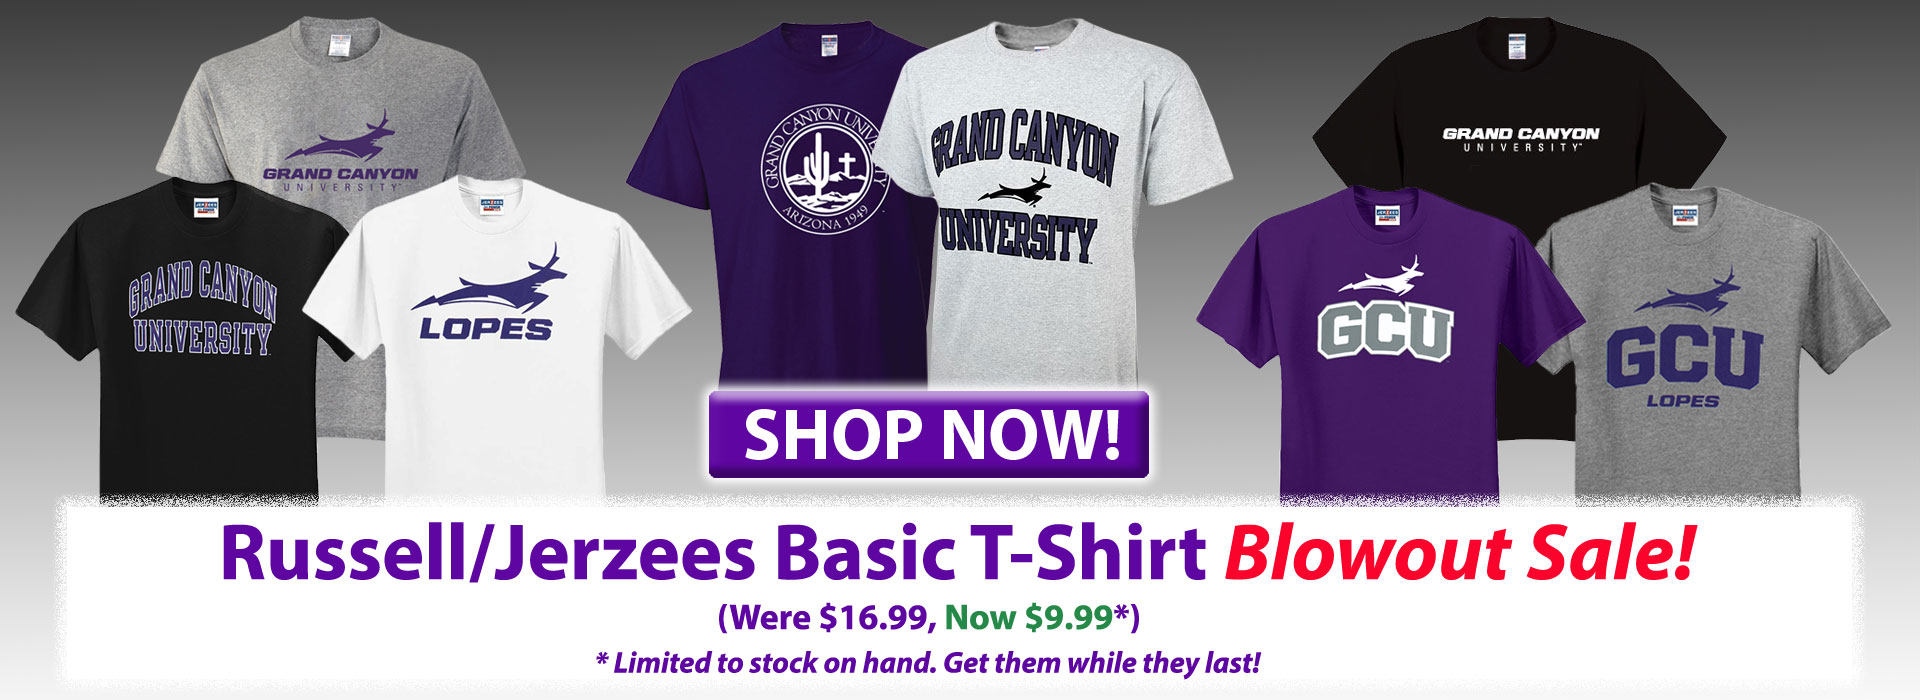 new style 047c9 462f4 GCU Lopes Clothing, Gear   Gifts   Lope Shops